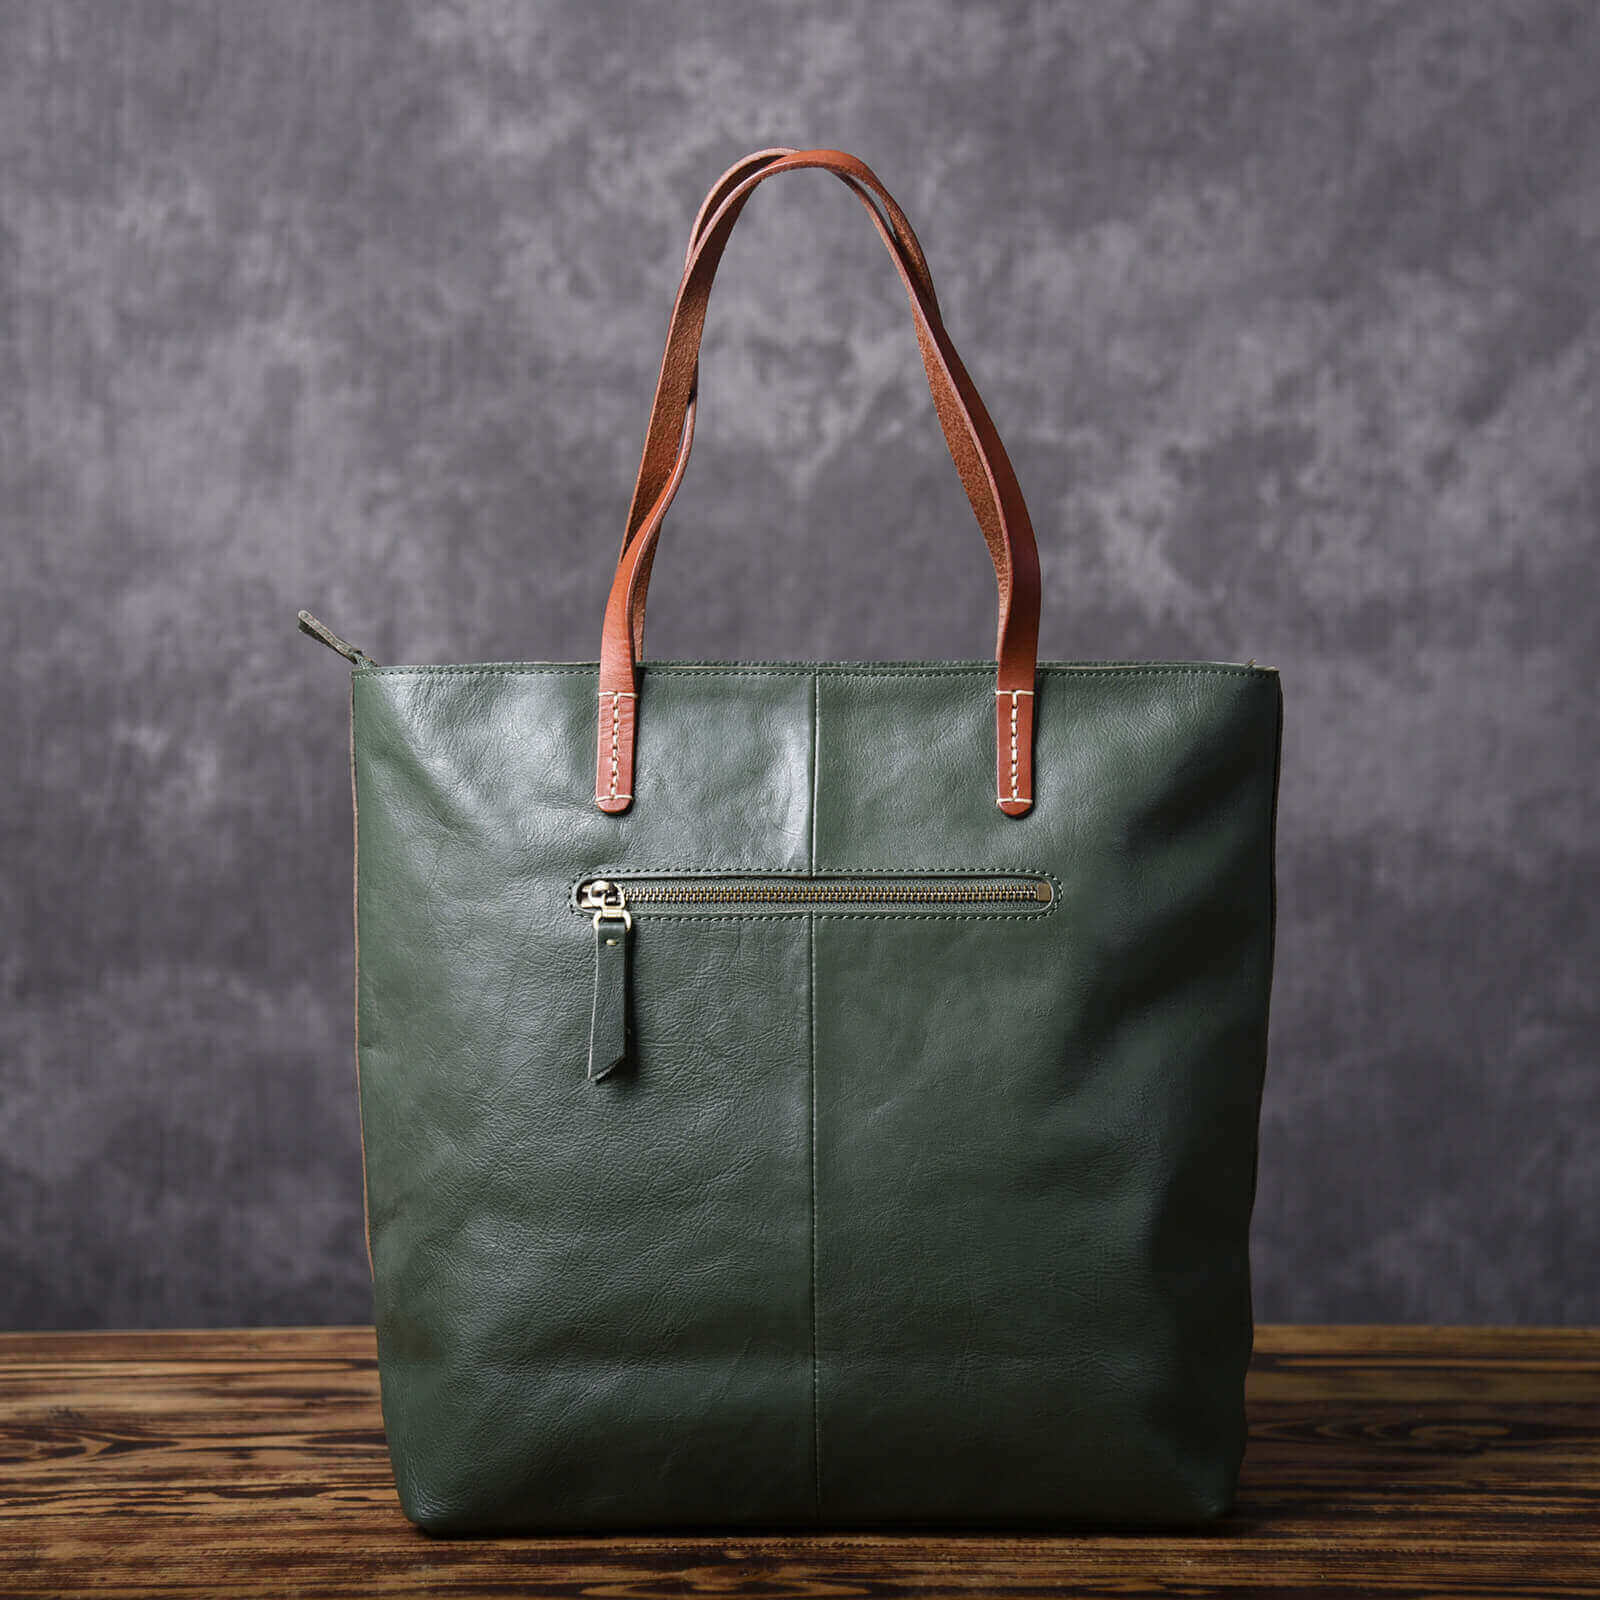 6d13b9e26f875 Vintage Totes For Women